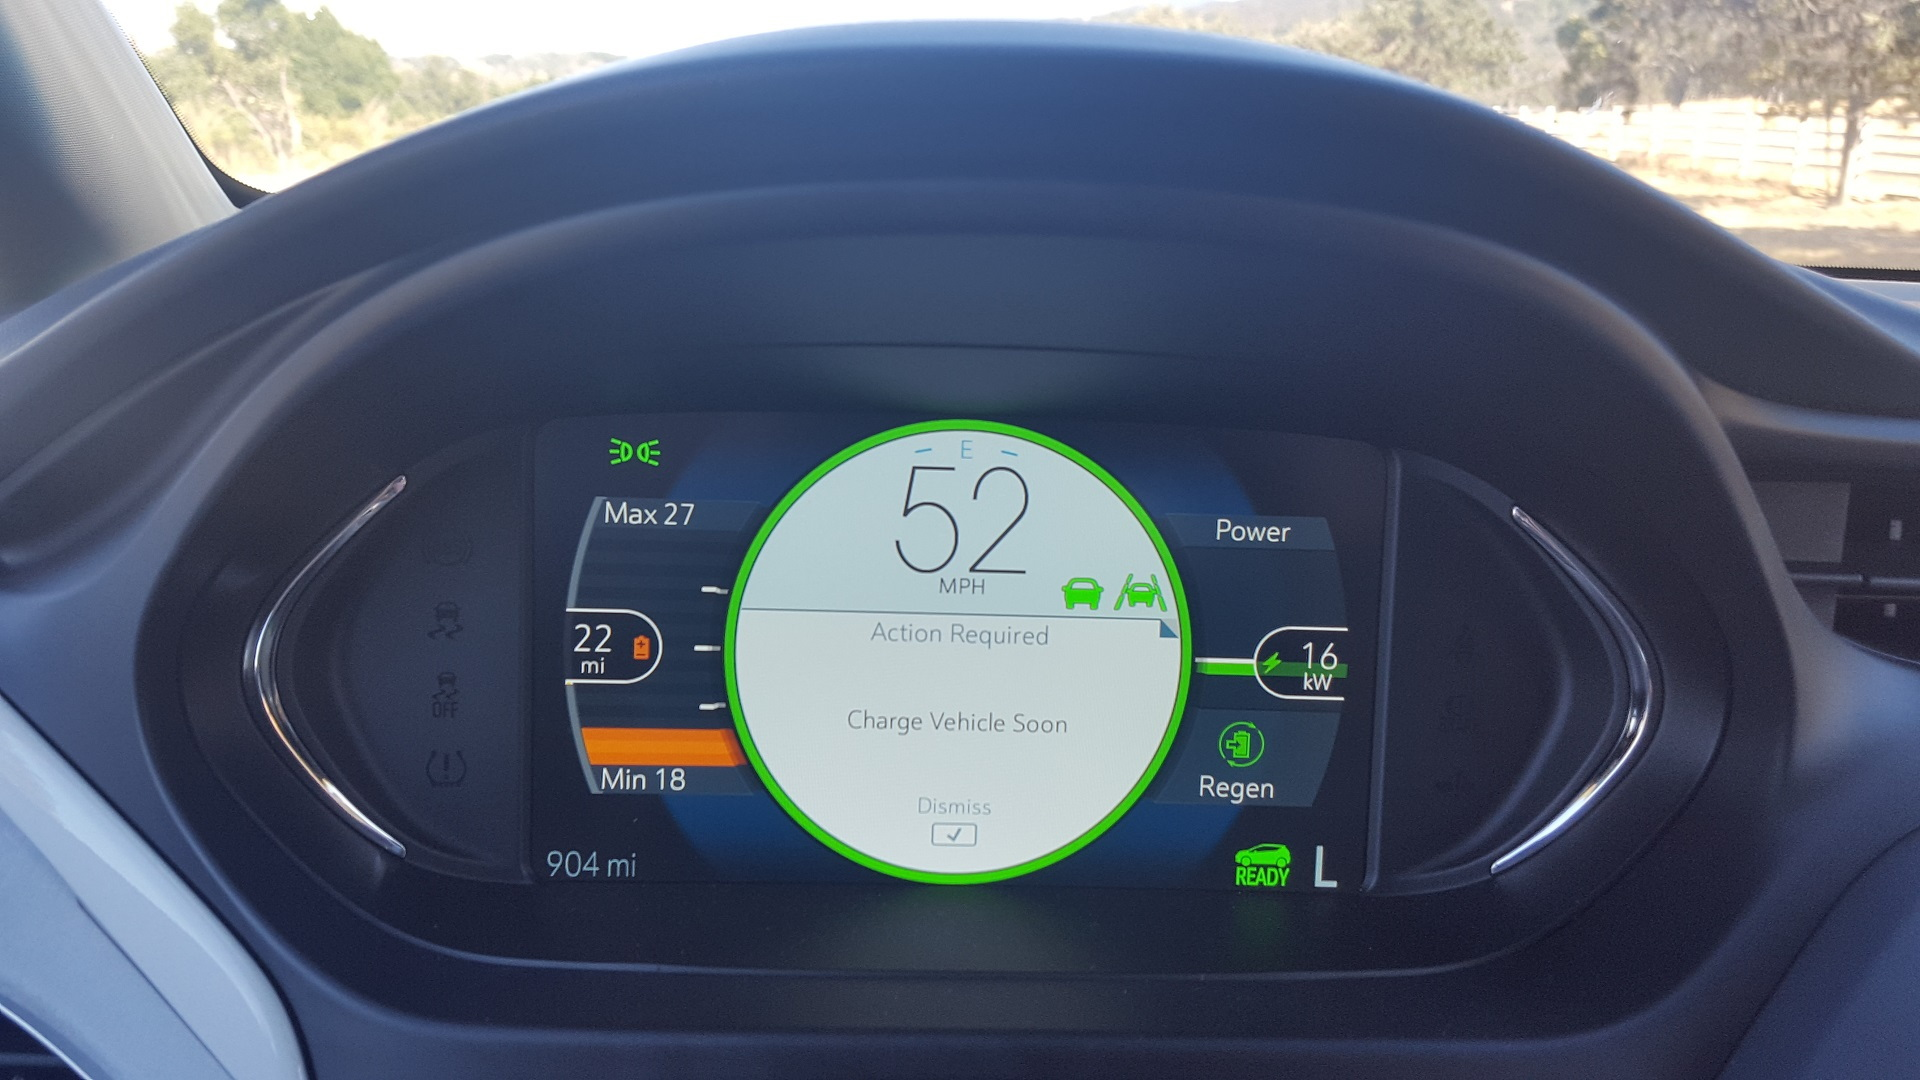 2017 Chevrolet Bolt EV, road test, California coastline, Sep 2016